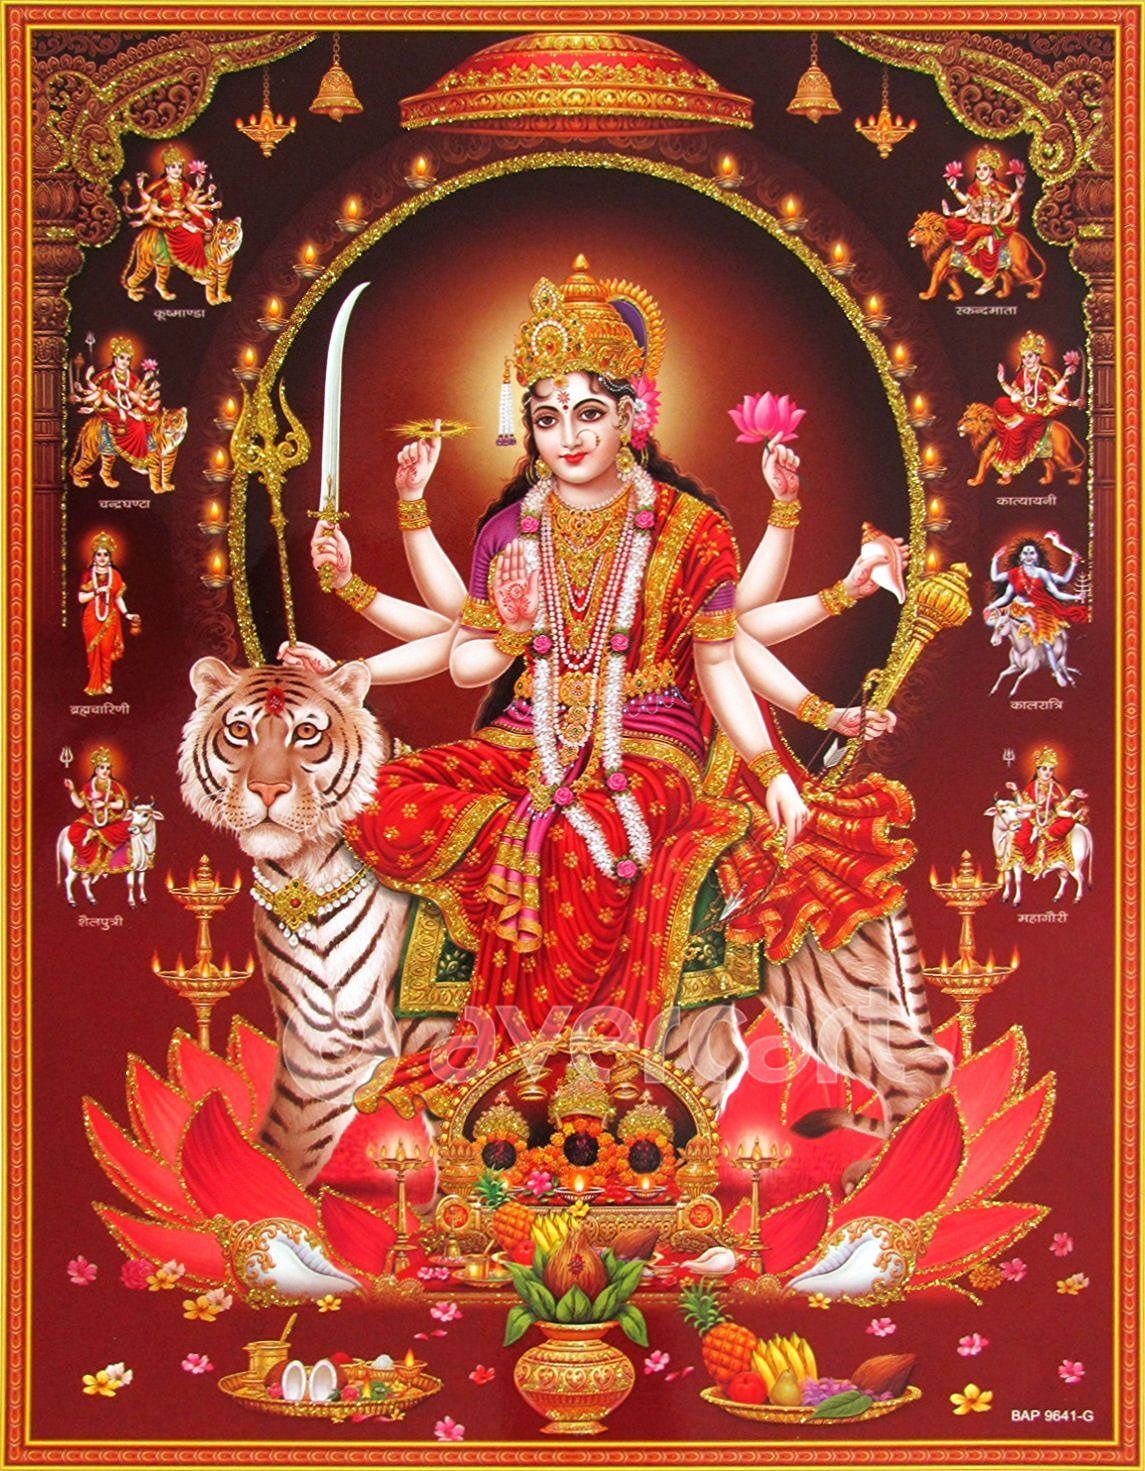 280 Maa Durga Hd Images Devi Wallpapers 2020 Full Size Photos म द र ग क फ ट Good Morning Images 2020